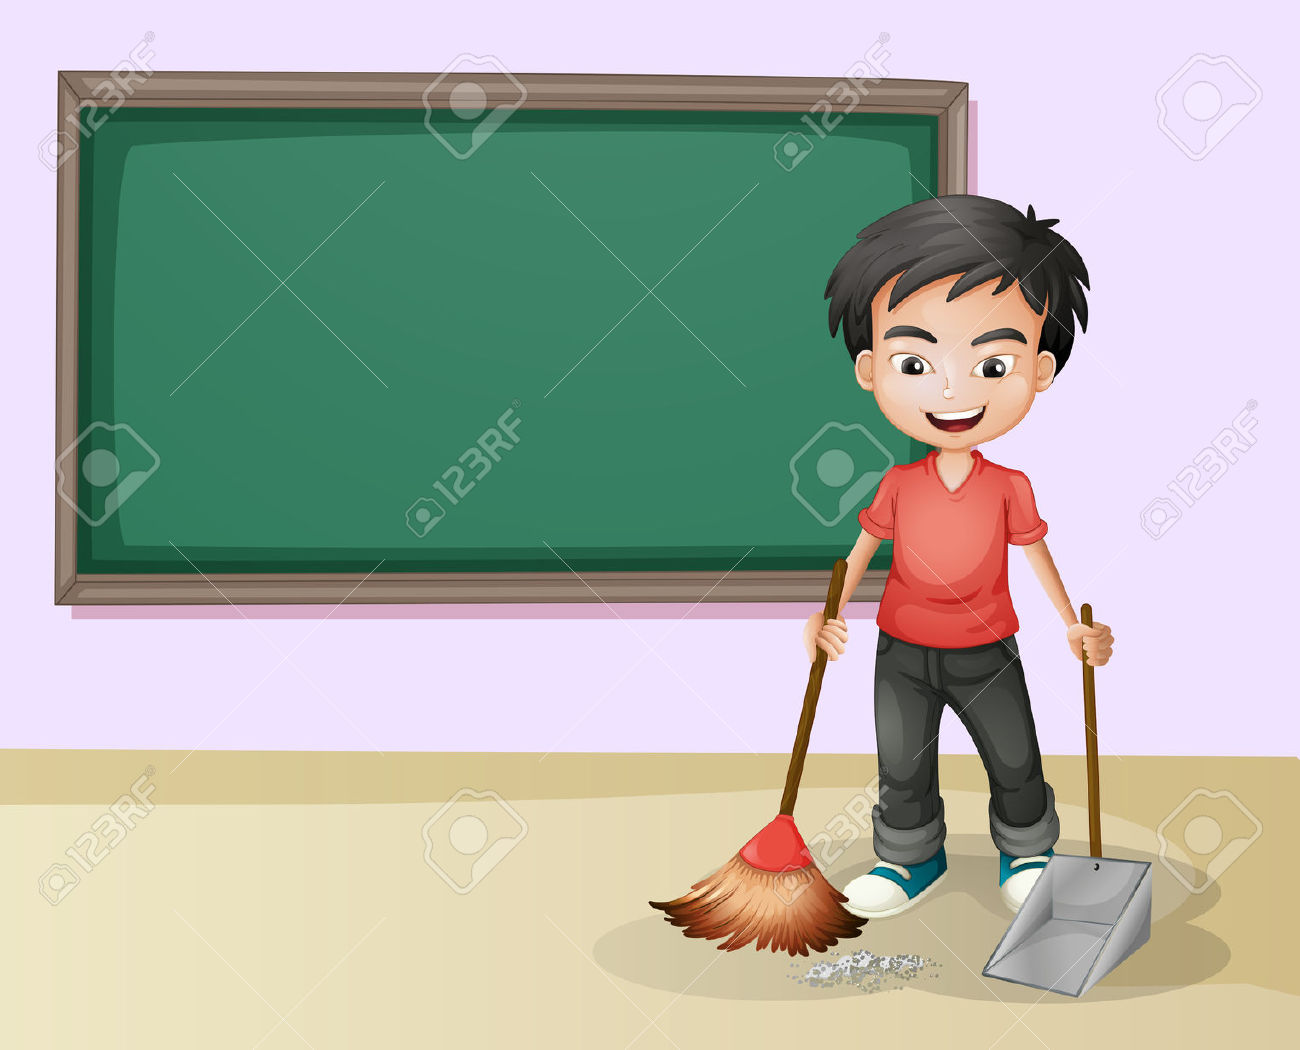 Illustration Of A Boy Cleaning In A Classroom Royalty Free.